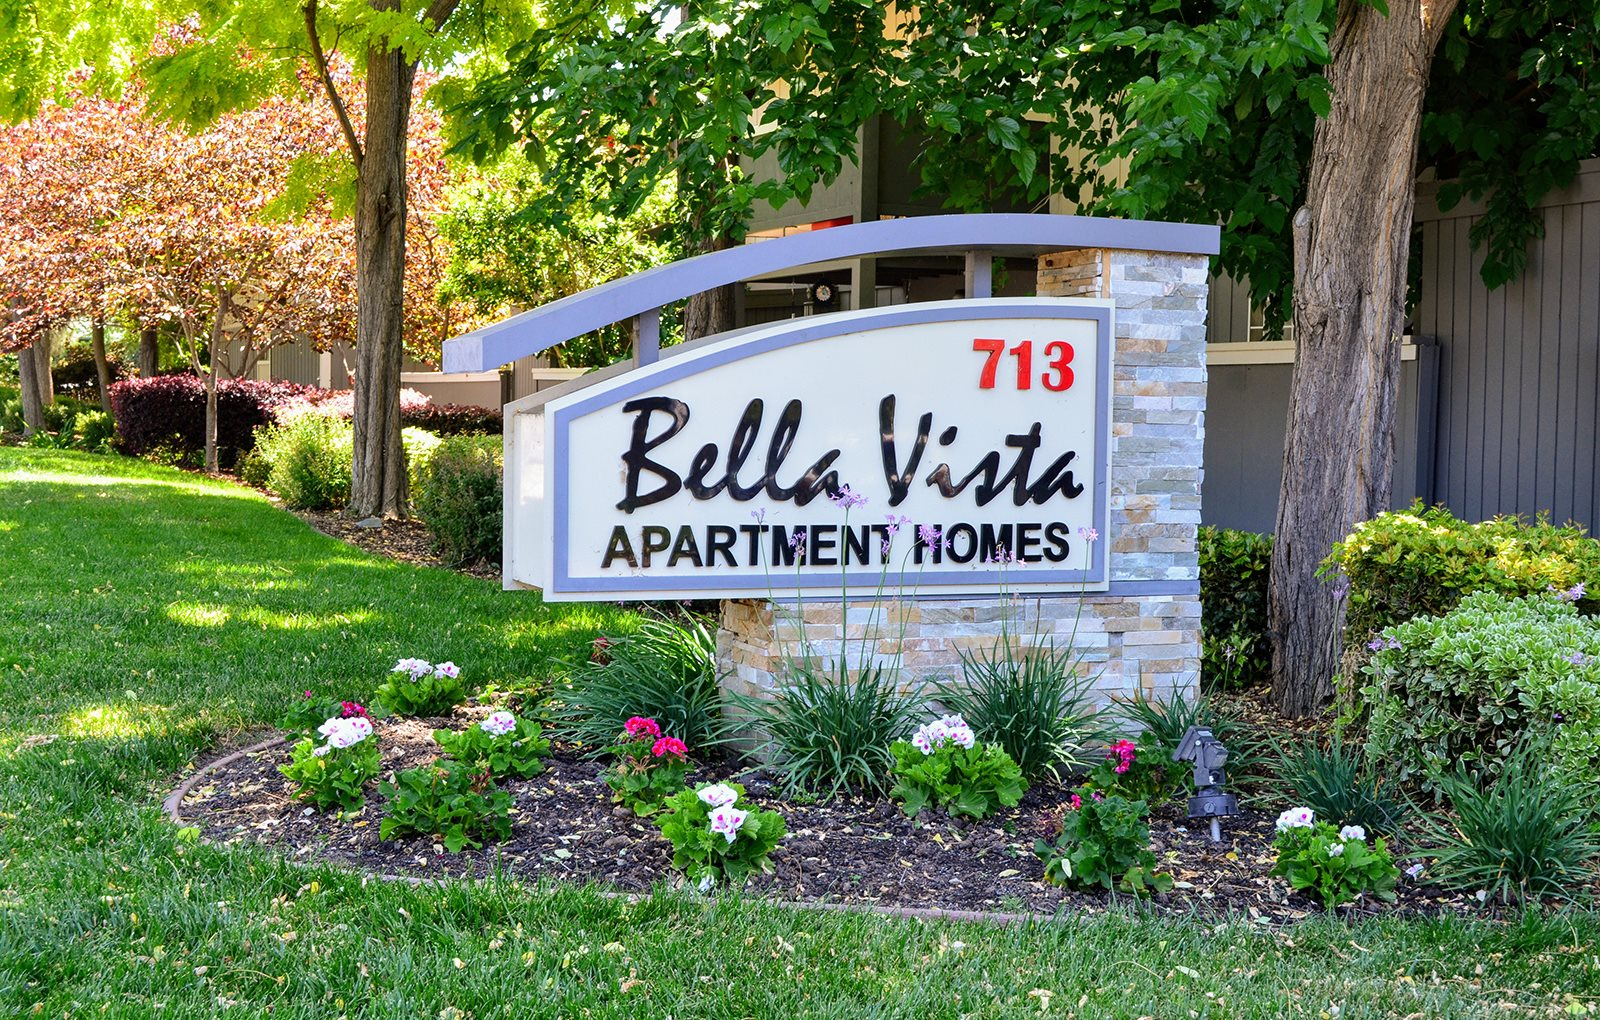 Bella Vista Apartment Homes Logo Sign, 713 Trancas Street, Napa, California